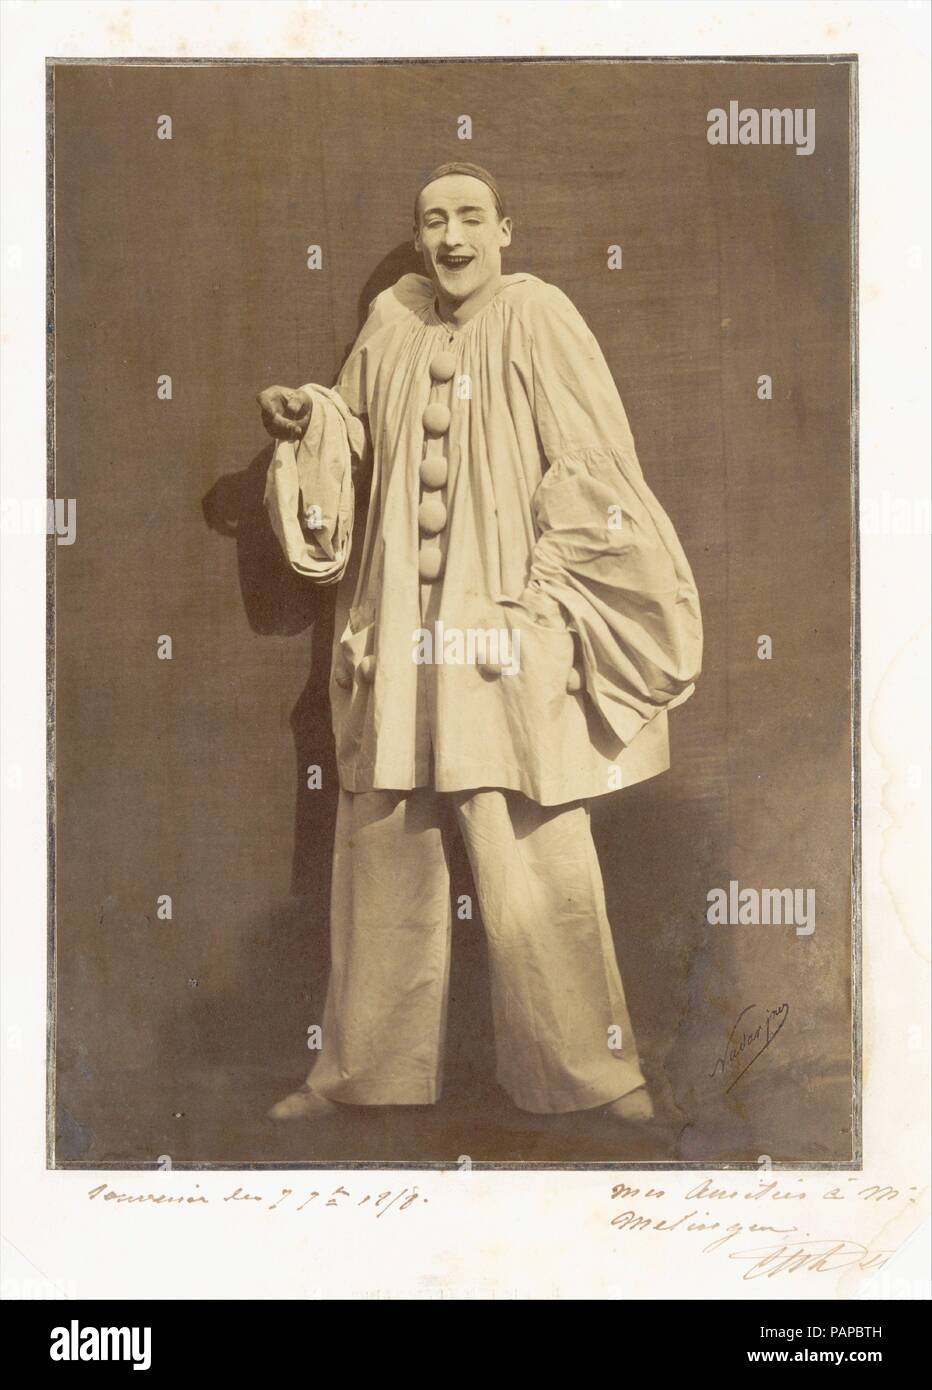 Pierrot Laughing. Artist: Adrien Tournachon (French, 1825-1903); Nadar (French, Paris 1820-1910 Paris). Dimensions: 27.3 x 19.8 cm (10 3/4 x 7 13/16 in.). Person in Photograph: Jean-Charles Deburau (French, 1829-1873). Date: 1855.  We owe the contemporary image of Pierrot to the famous mime Jean-Gaspard Baptiste Duburau, who replaced the ruff and wide white hat of the commedia dell'arte character with the long blank face and black skull cap that we recognize today.  Charles Duburau, his son and also a mime, was asked by Nadar and his brother Adrien to pose for a series of 'têtes d'expression'  - Stock Image